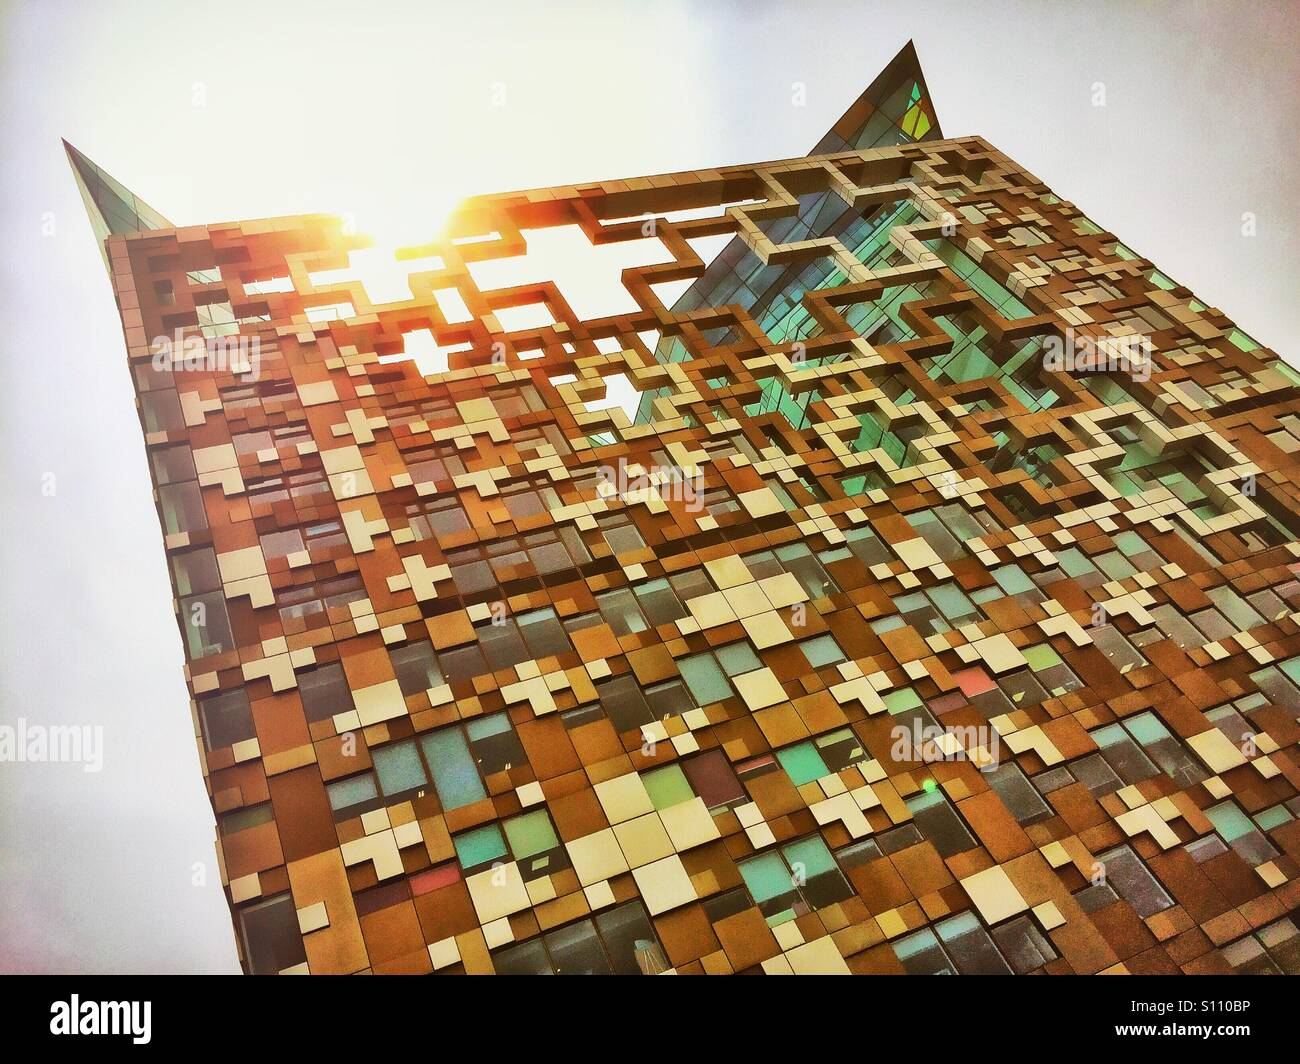 The Cube. Birmingham. U.K. - Stock Image